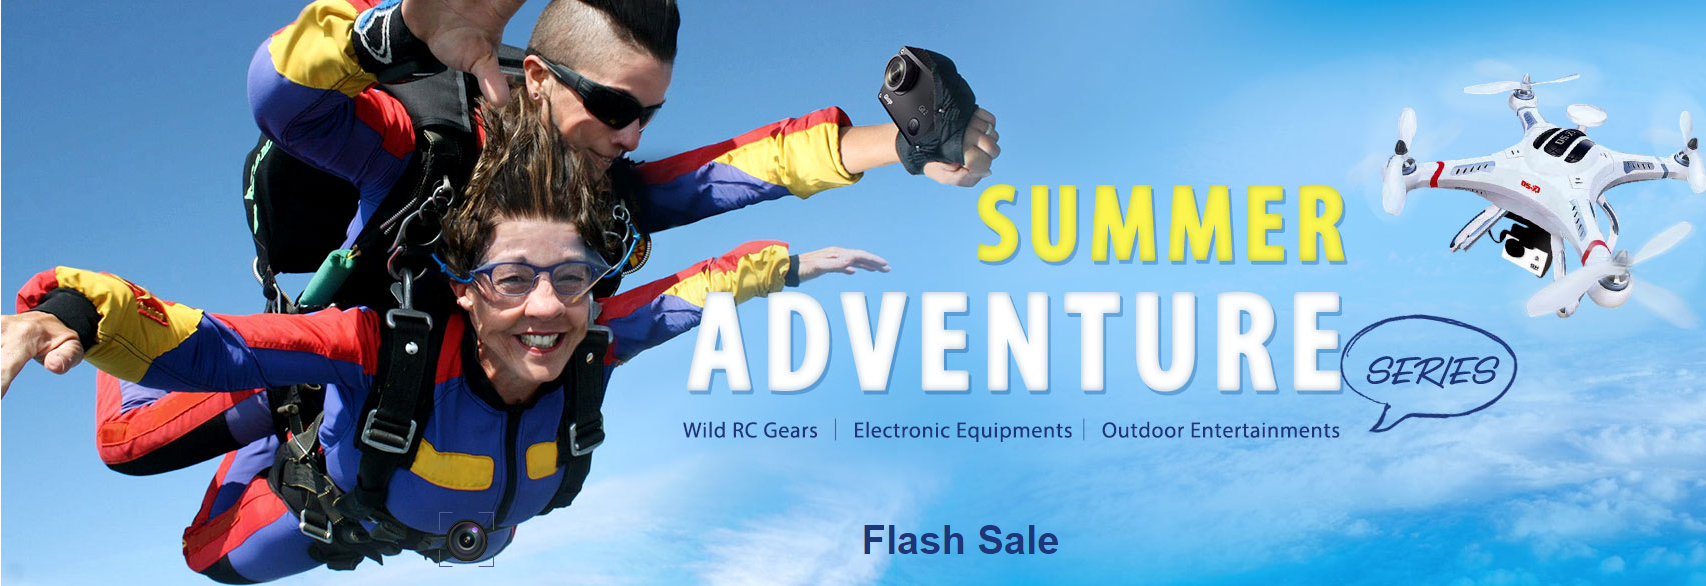 Gearbest RC Adventures in This Summer